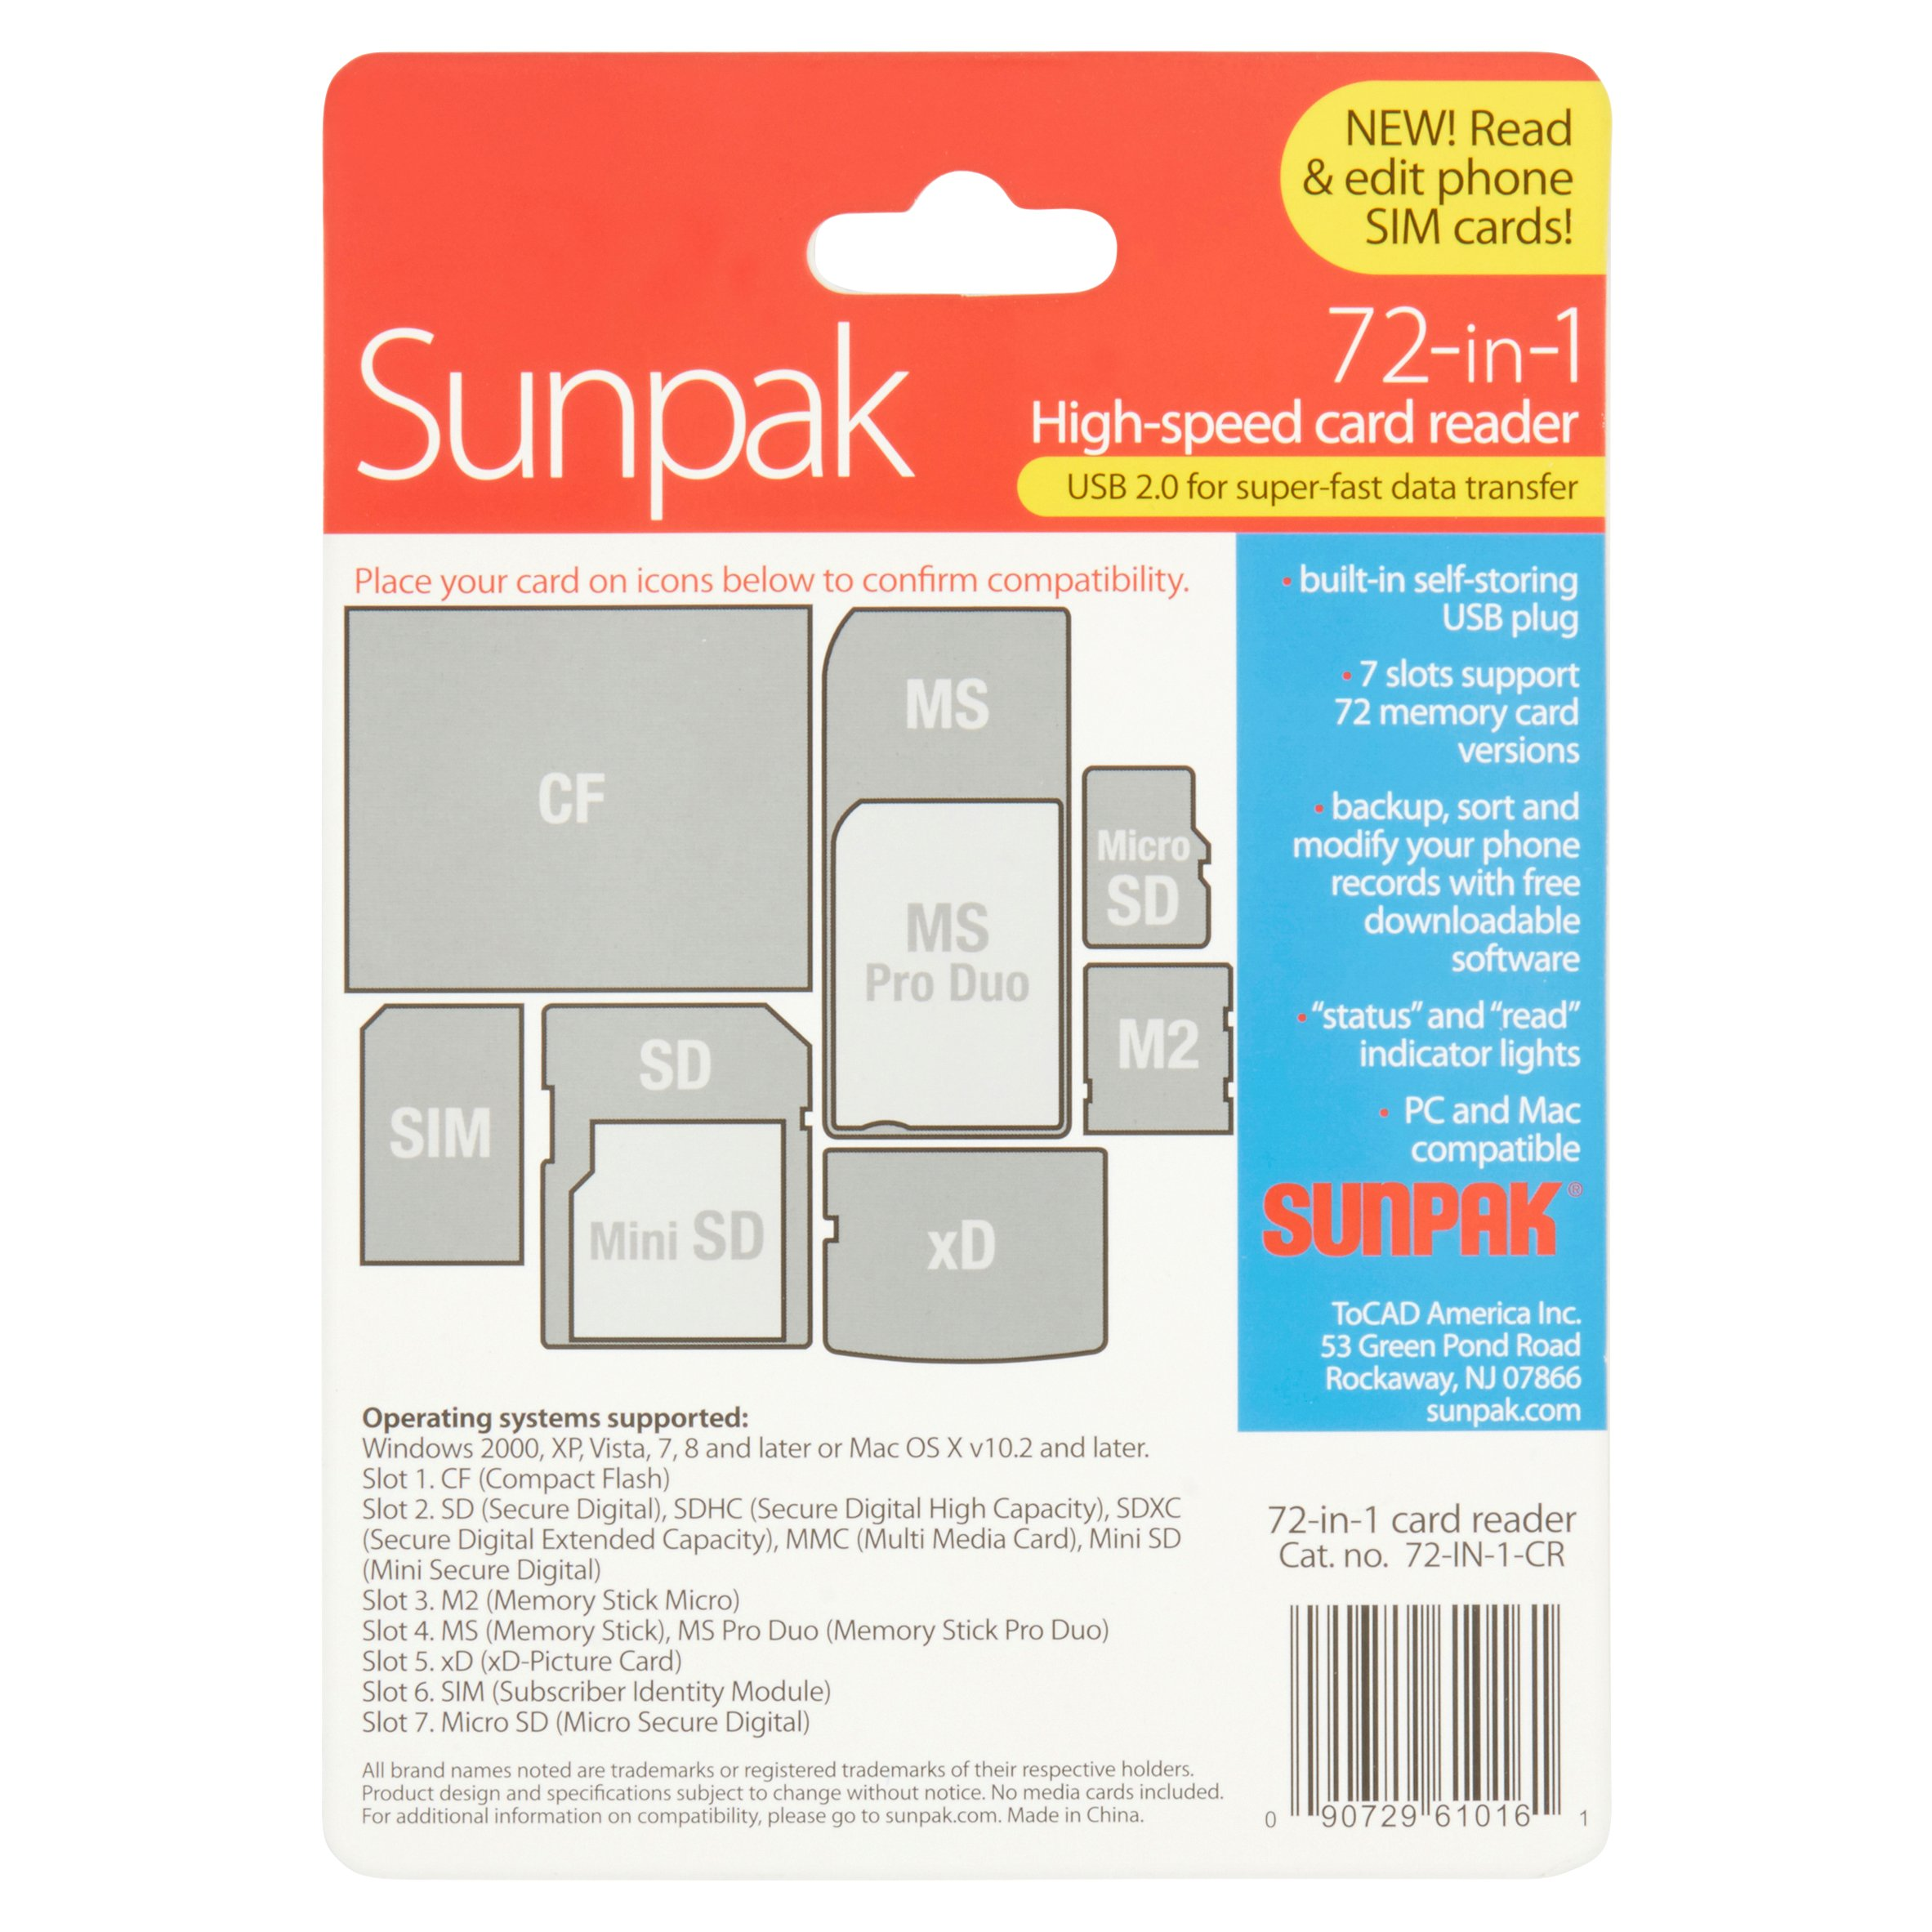 SOLVED I bought a sunpak in-1 card reader and it didnt - Fixya